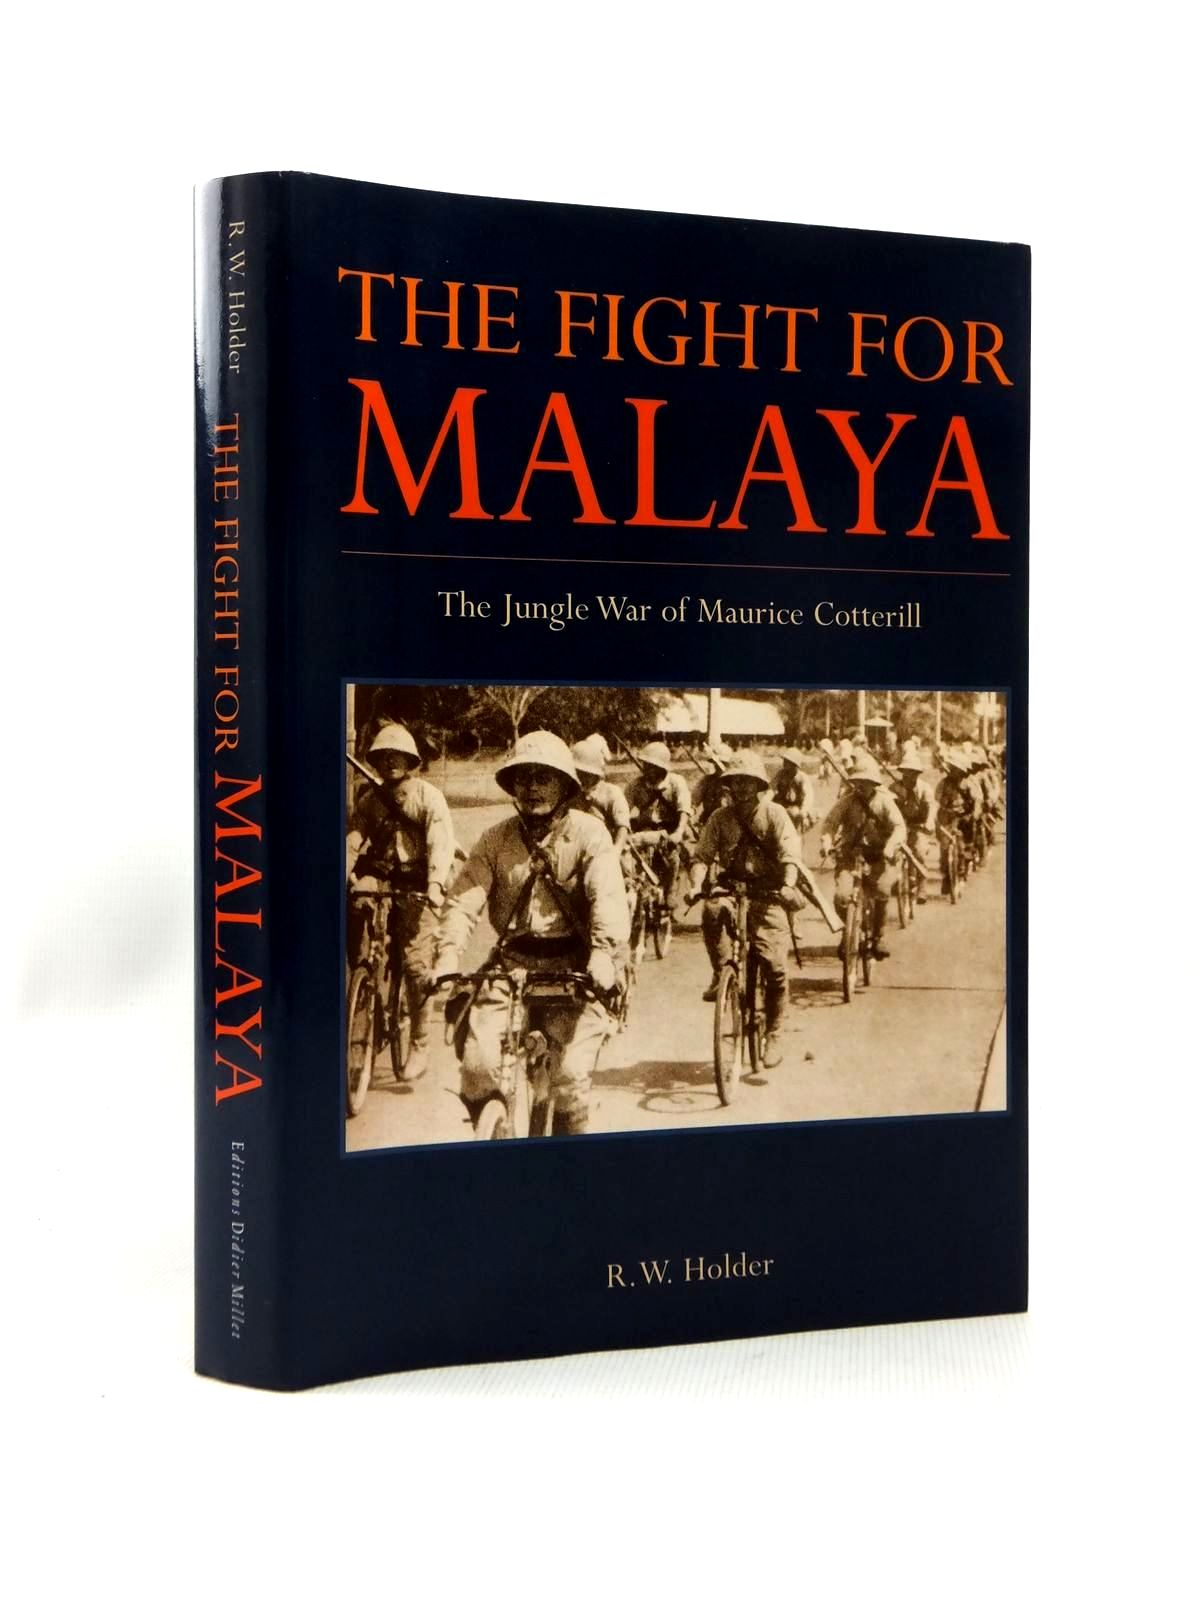 Photo of THE FIGHT FOR MALAYA written by Holder, R.W. published by Editions Didier Millet (STOCK CODE: 1208878)  for sale by Stella & Rose's Books